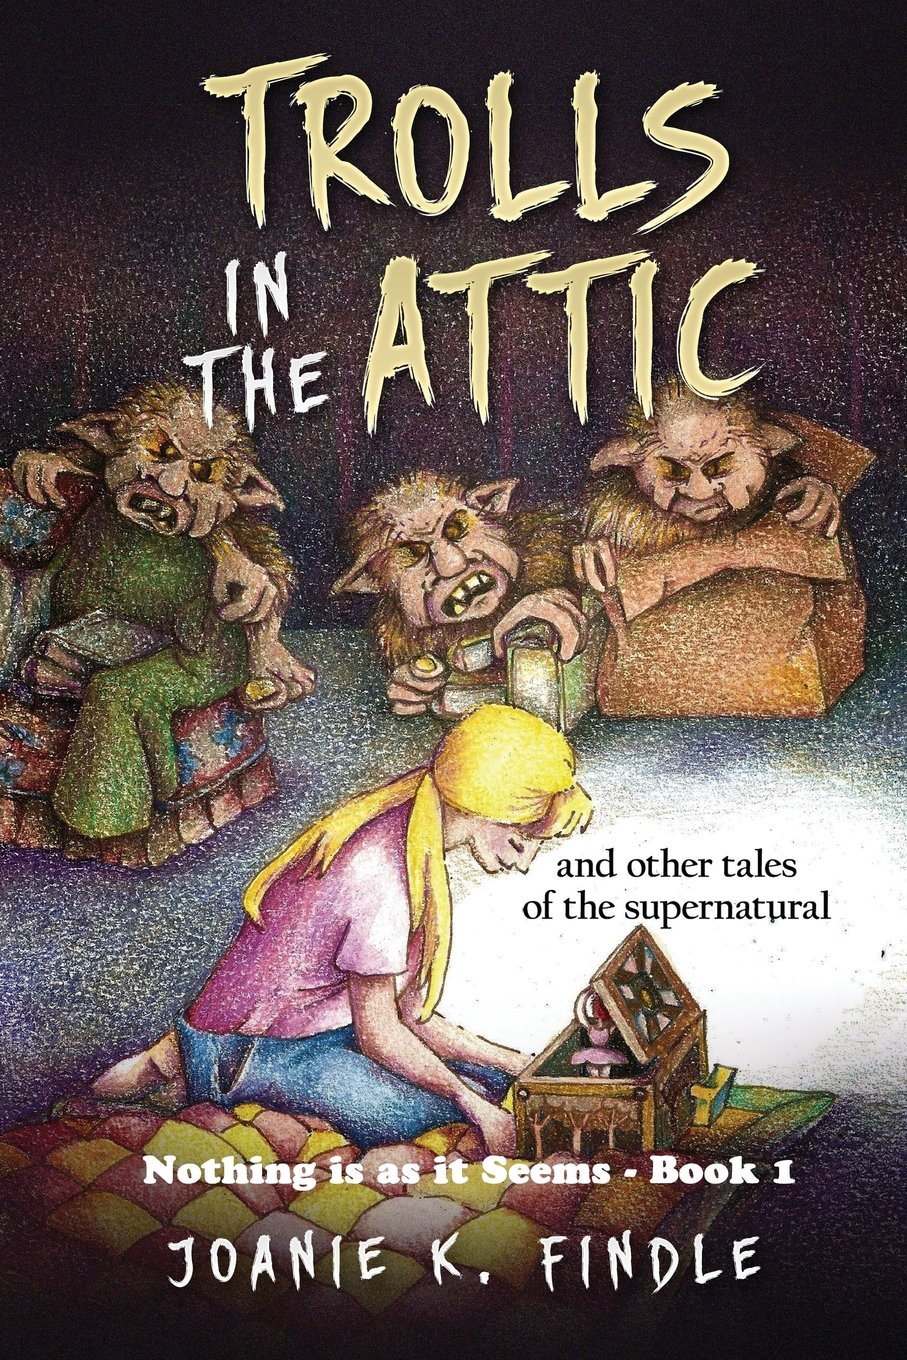 Download Trolls in the Attic: and Other Tales of the Supernatural (Nothing is as it Seems) (Volume 1) PDF